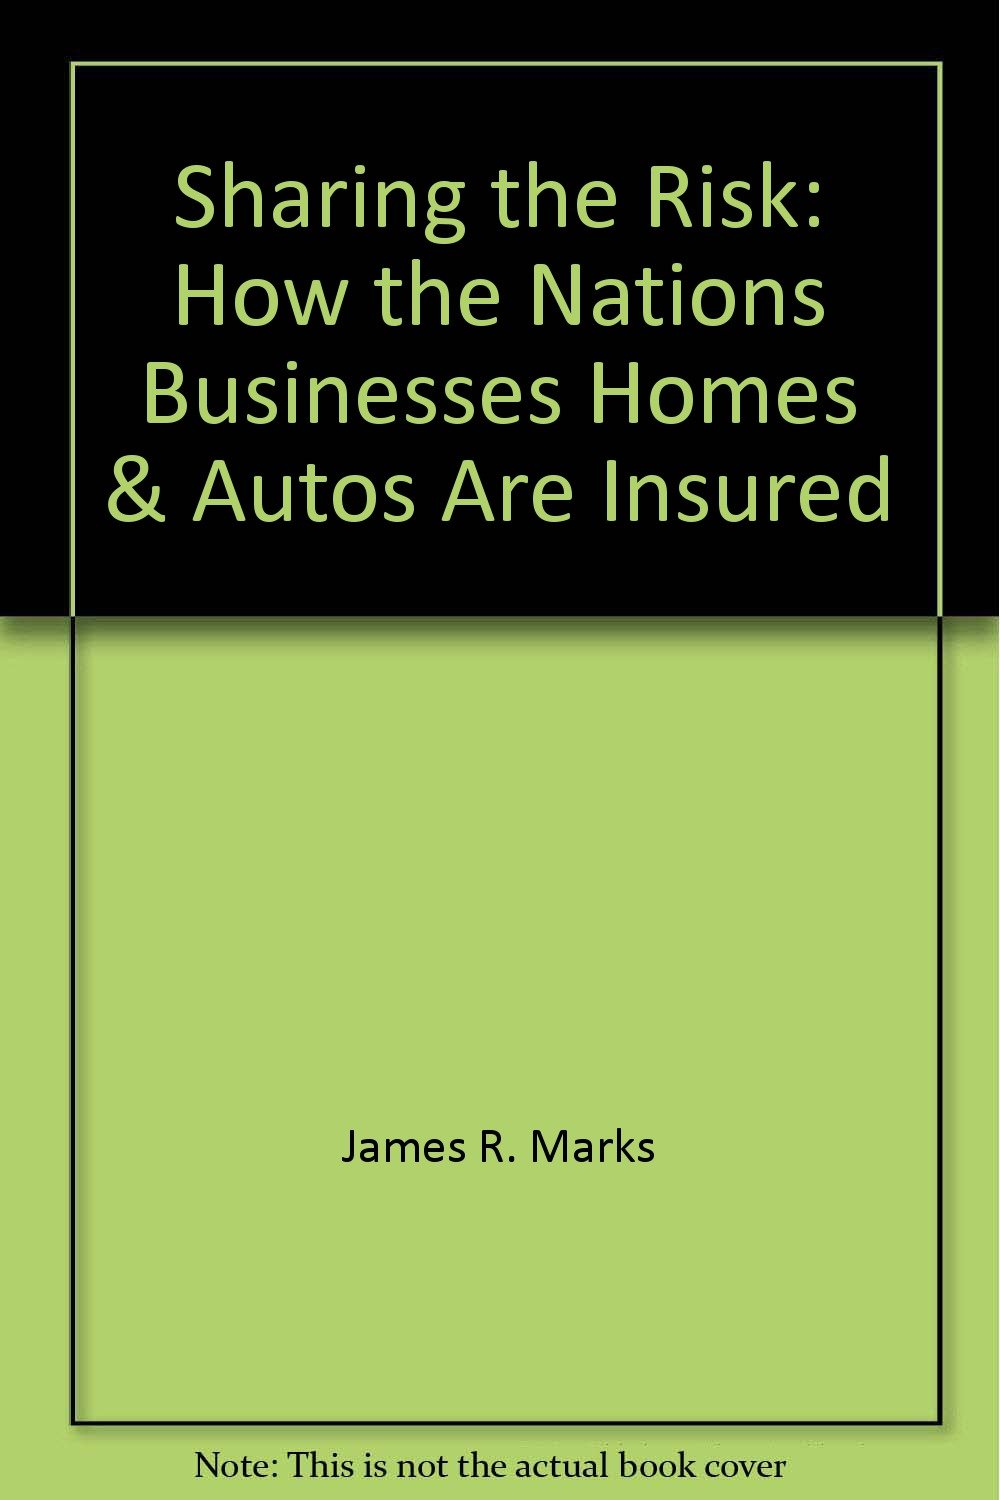 Sharing the Risk: How the Nations Businesses, Homes & Autos Are Insured